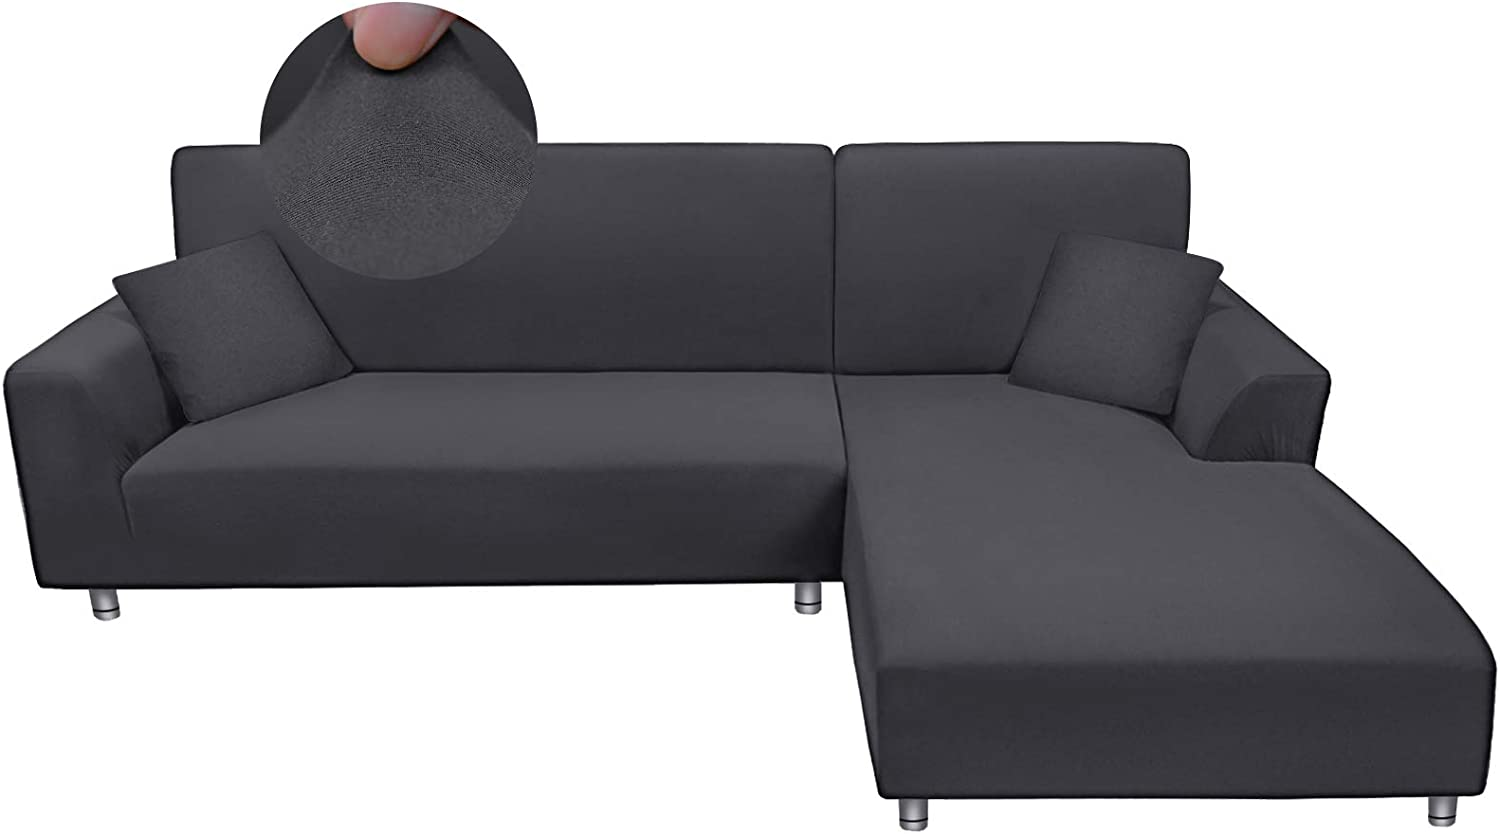 Max 79% OFF SUKODIS Couch Covers Slipcover 1 Pcs Cover Sh Industry No. L Protector Sofa